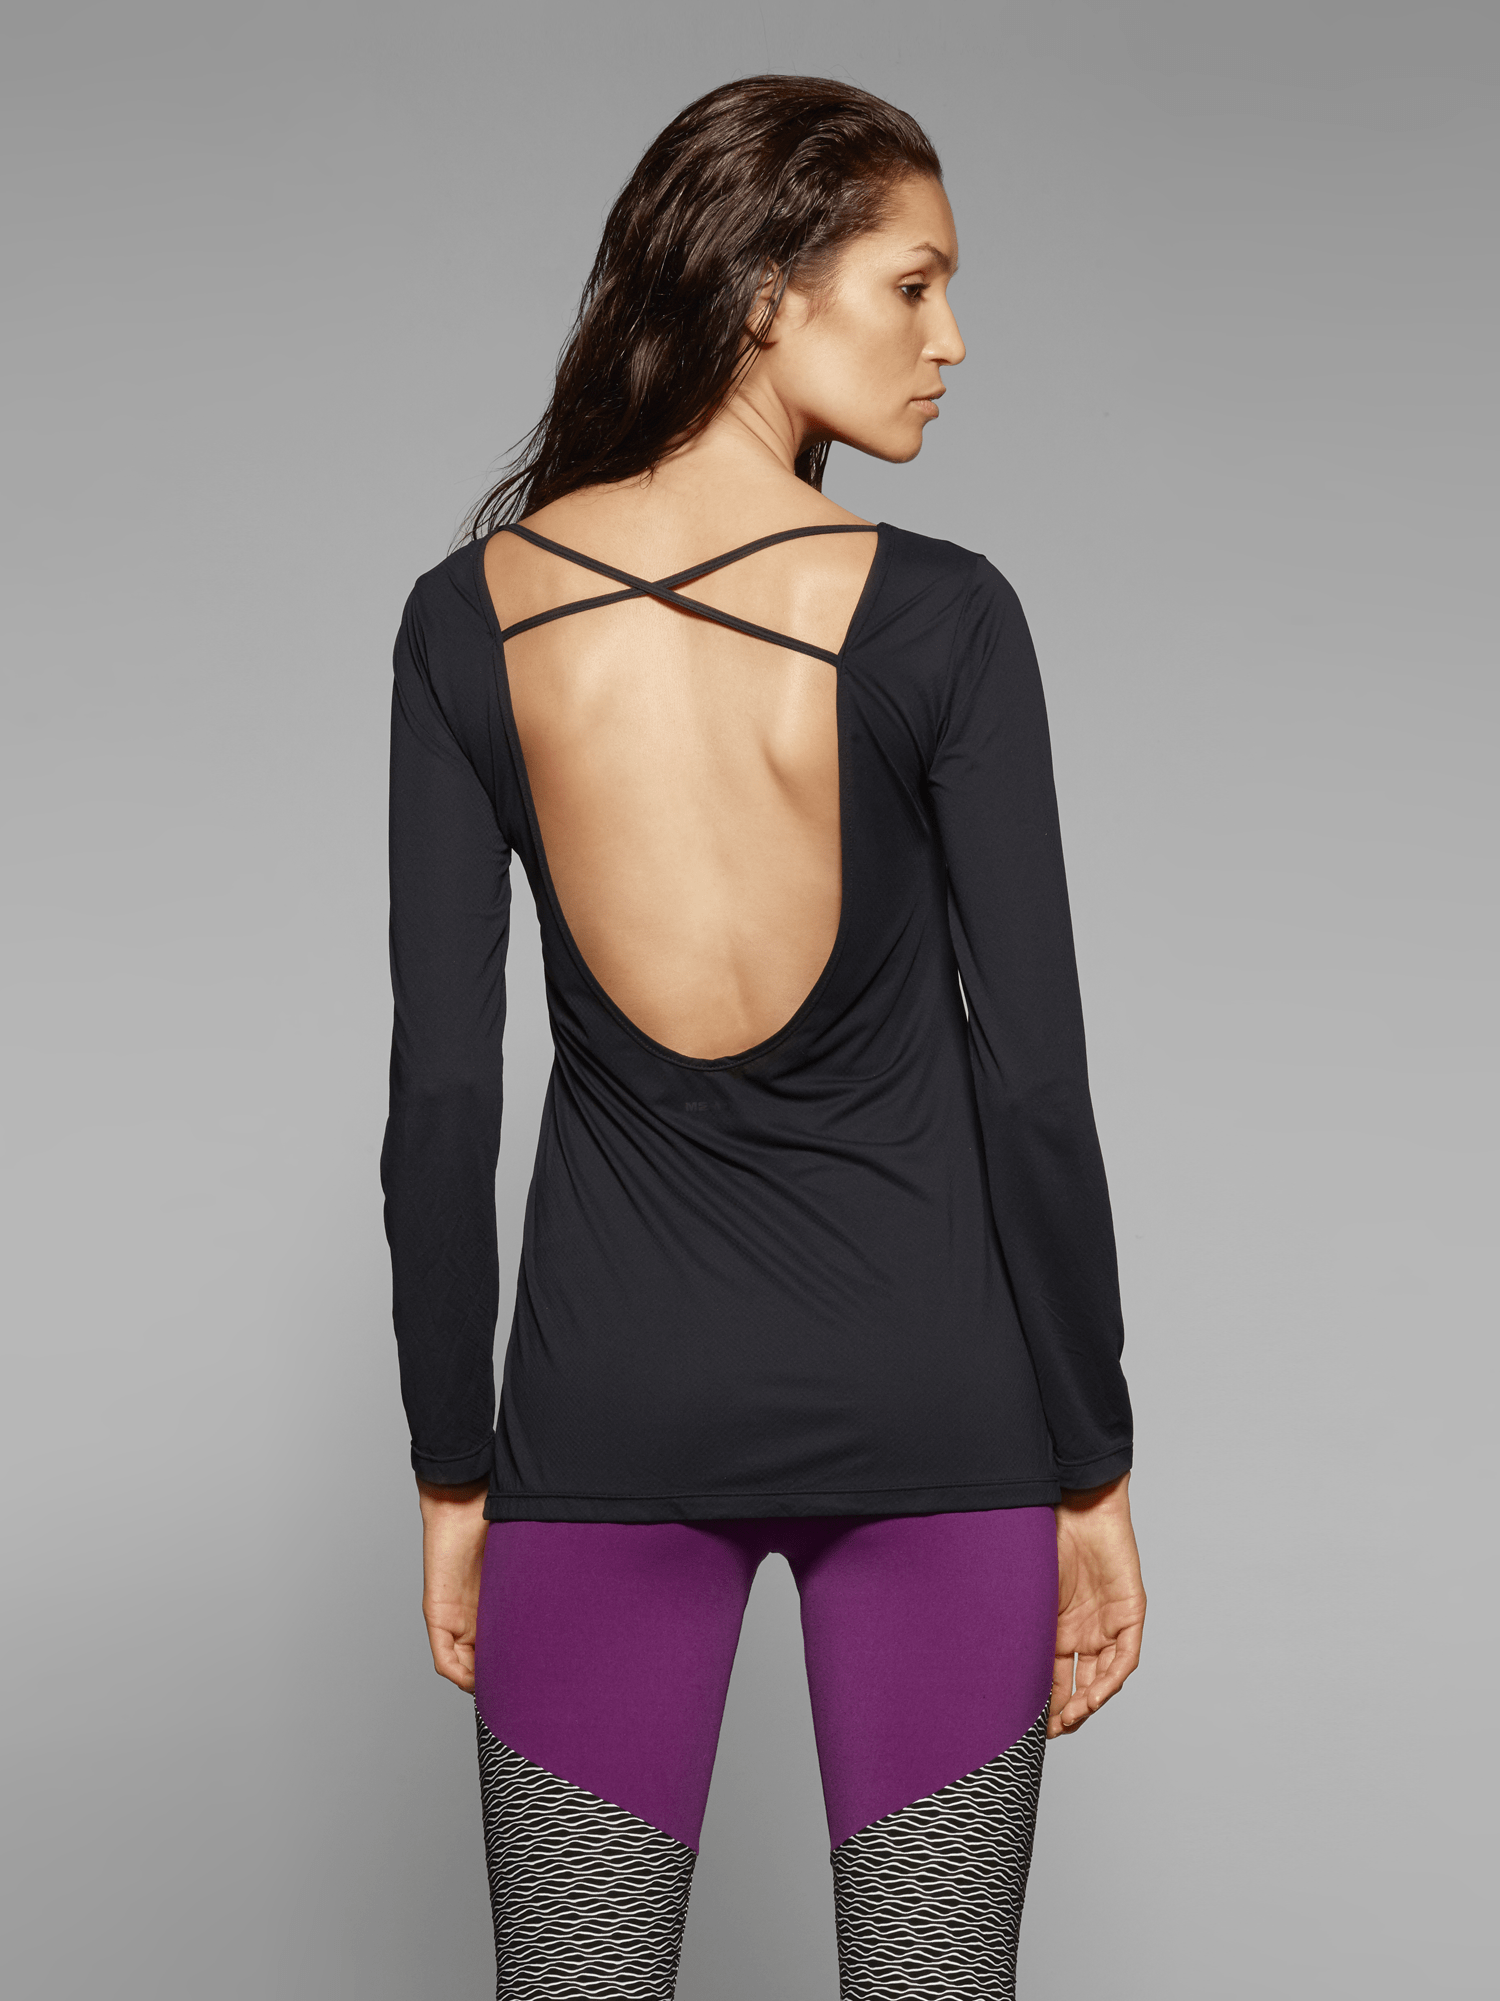 Long Sleeved Dry Fit Top from SixtyNinety